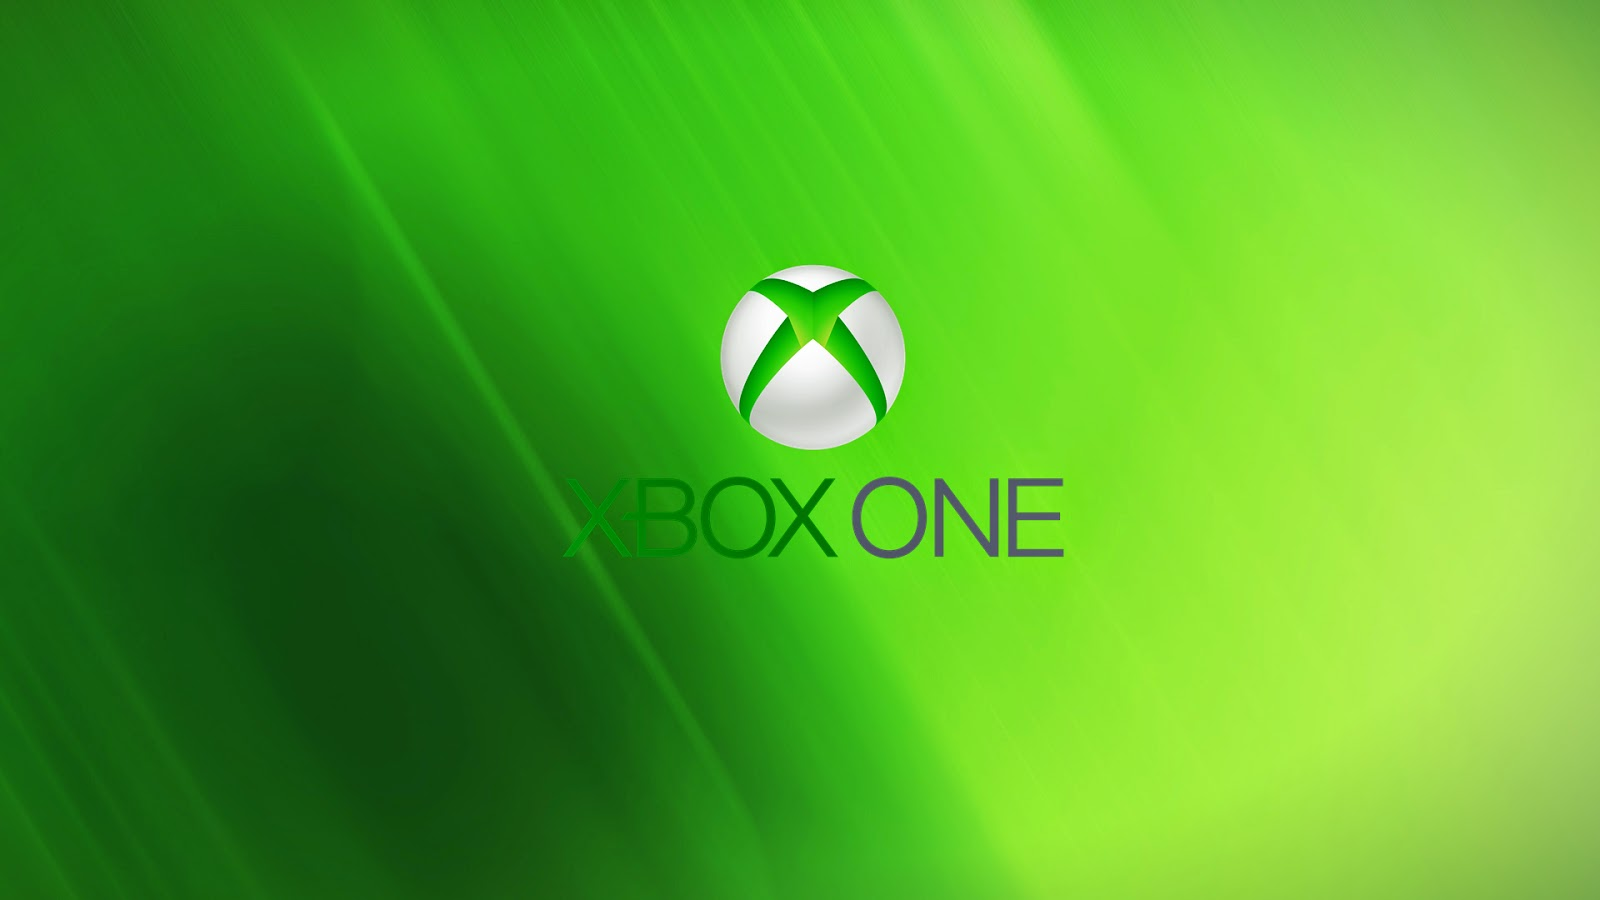 Xbox One Wallpapers HD | HD Wallpapers